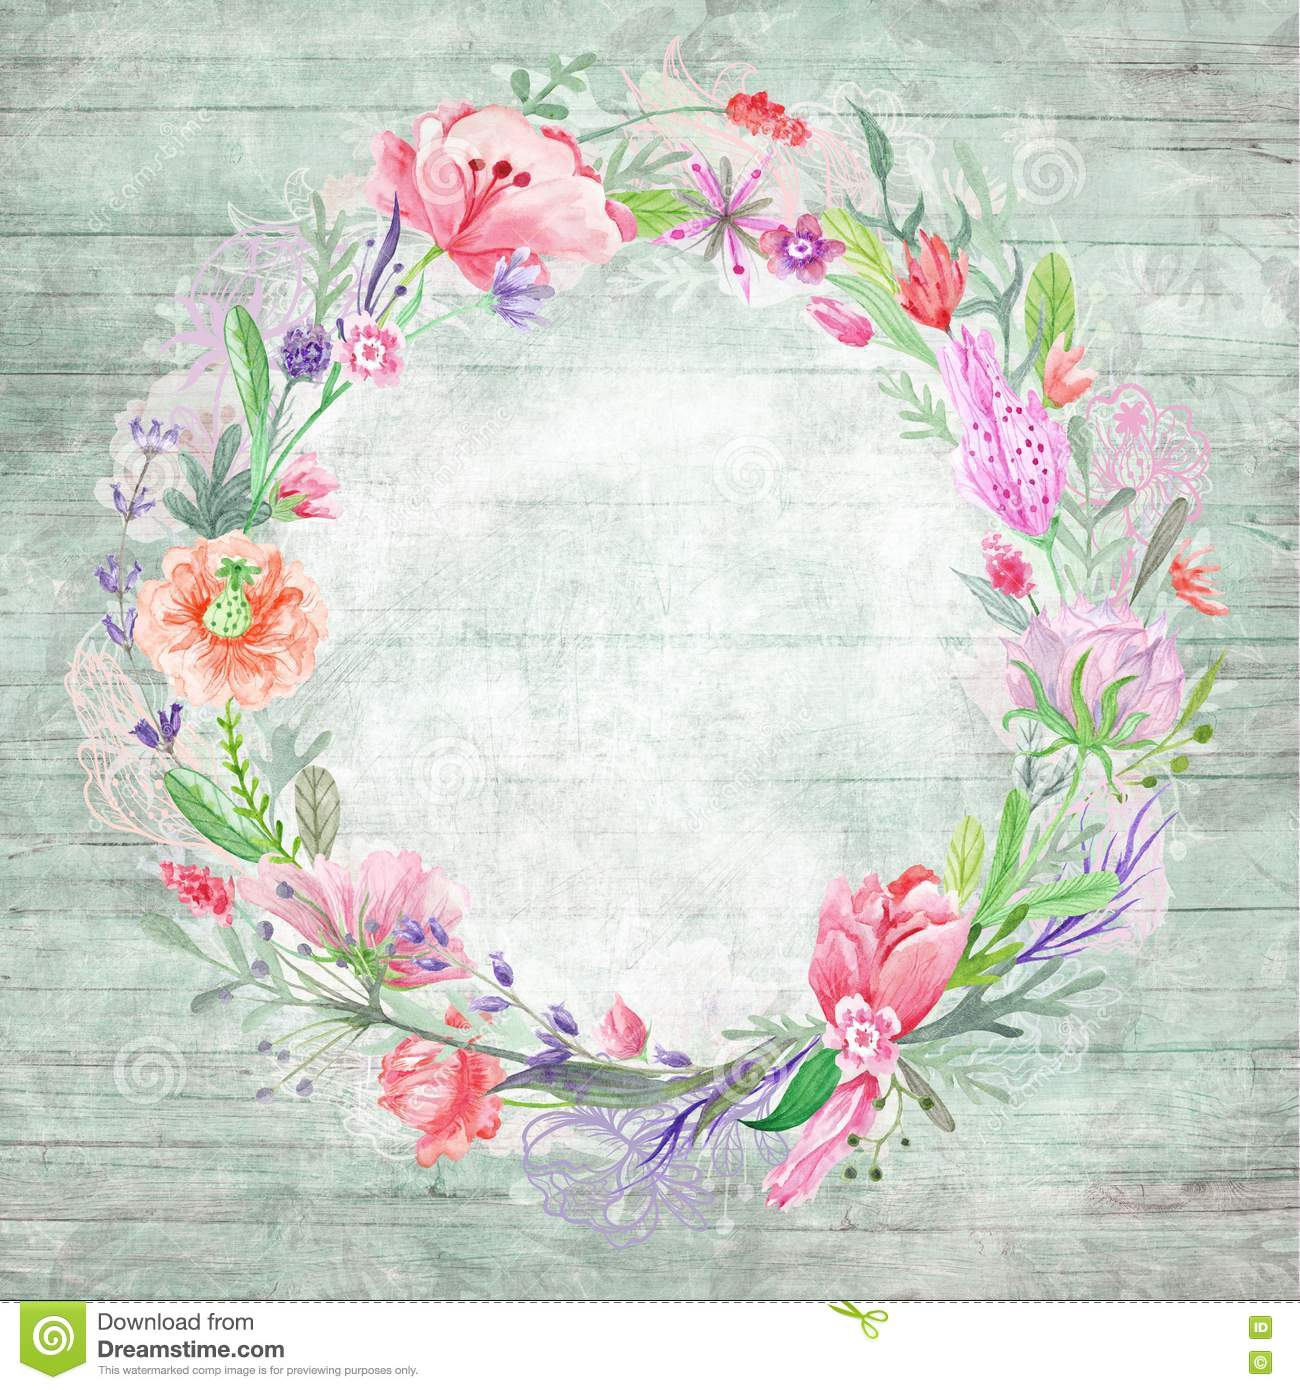 Shabby Chic Background With Floral Wreath